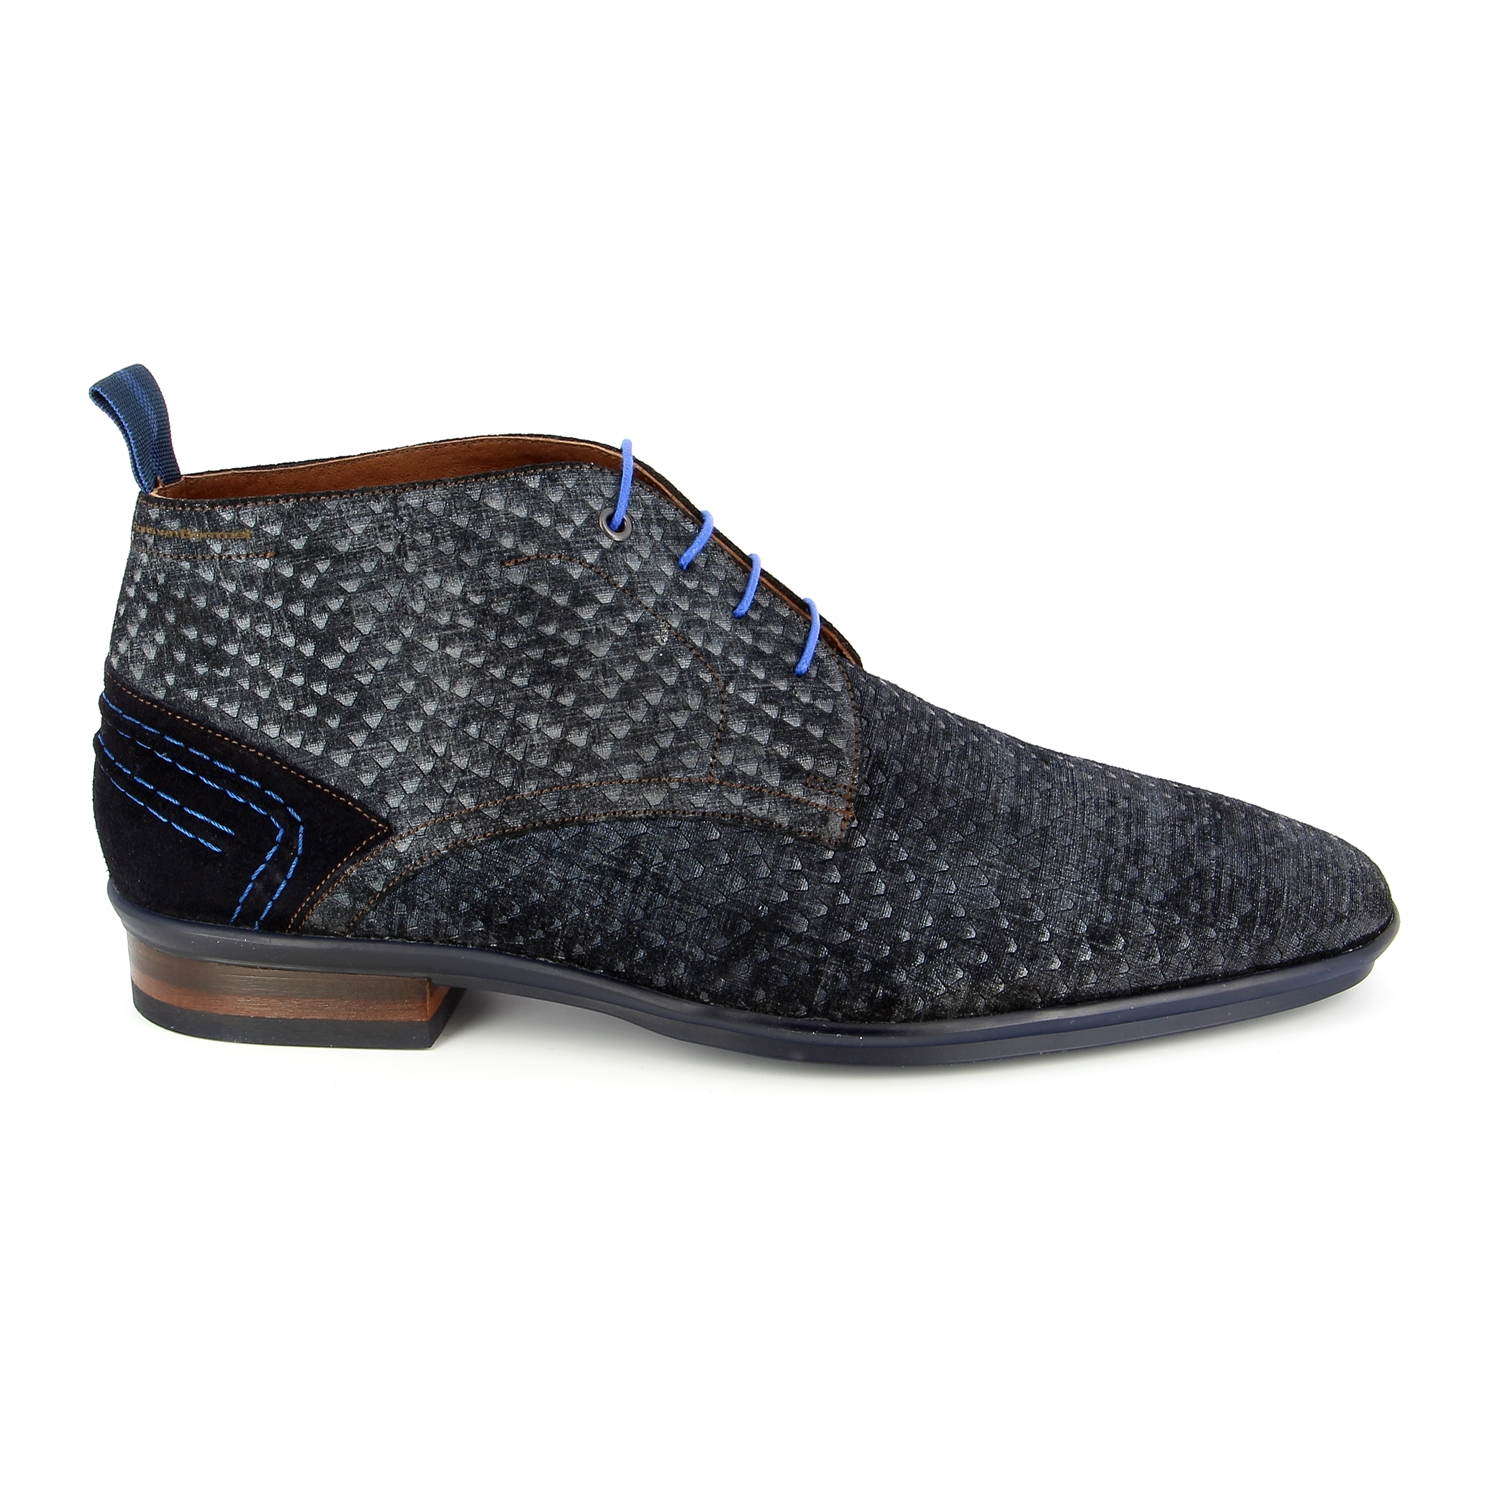 Floris Van Bommel Bottines bleu